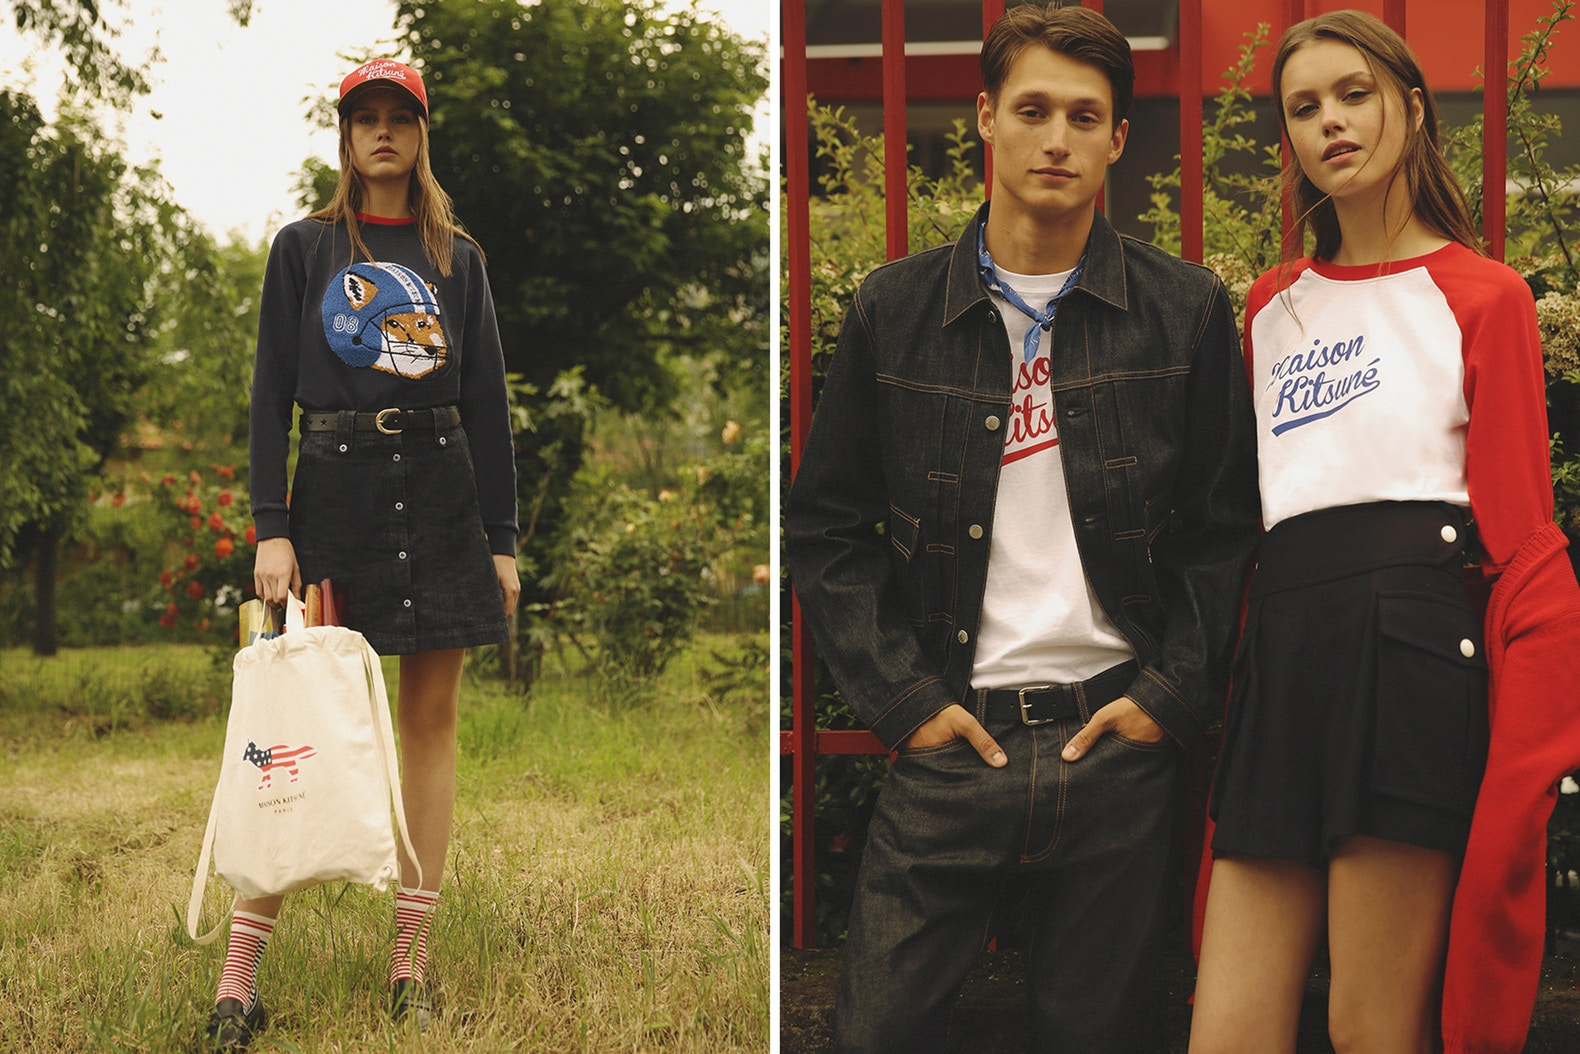 maison-kitsune-teen-spirit-good2b-04